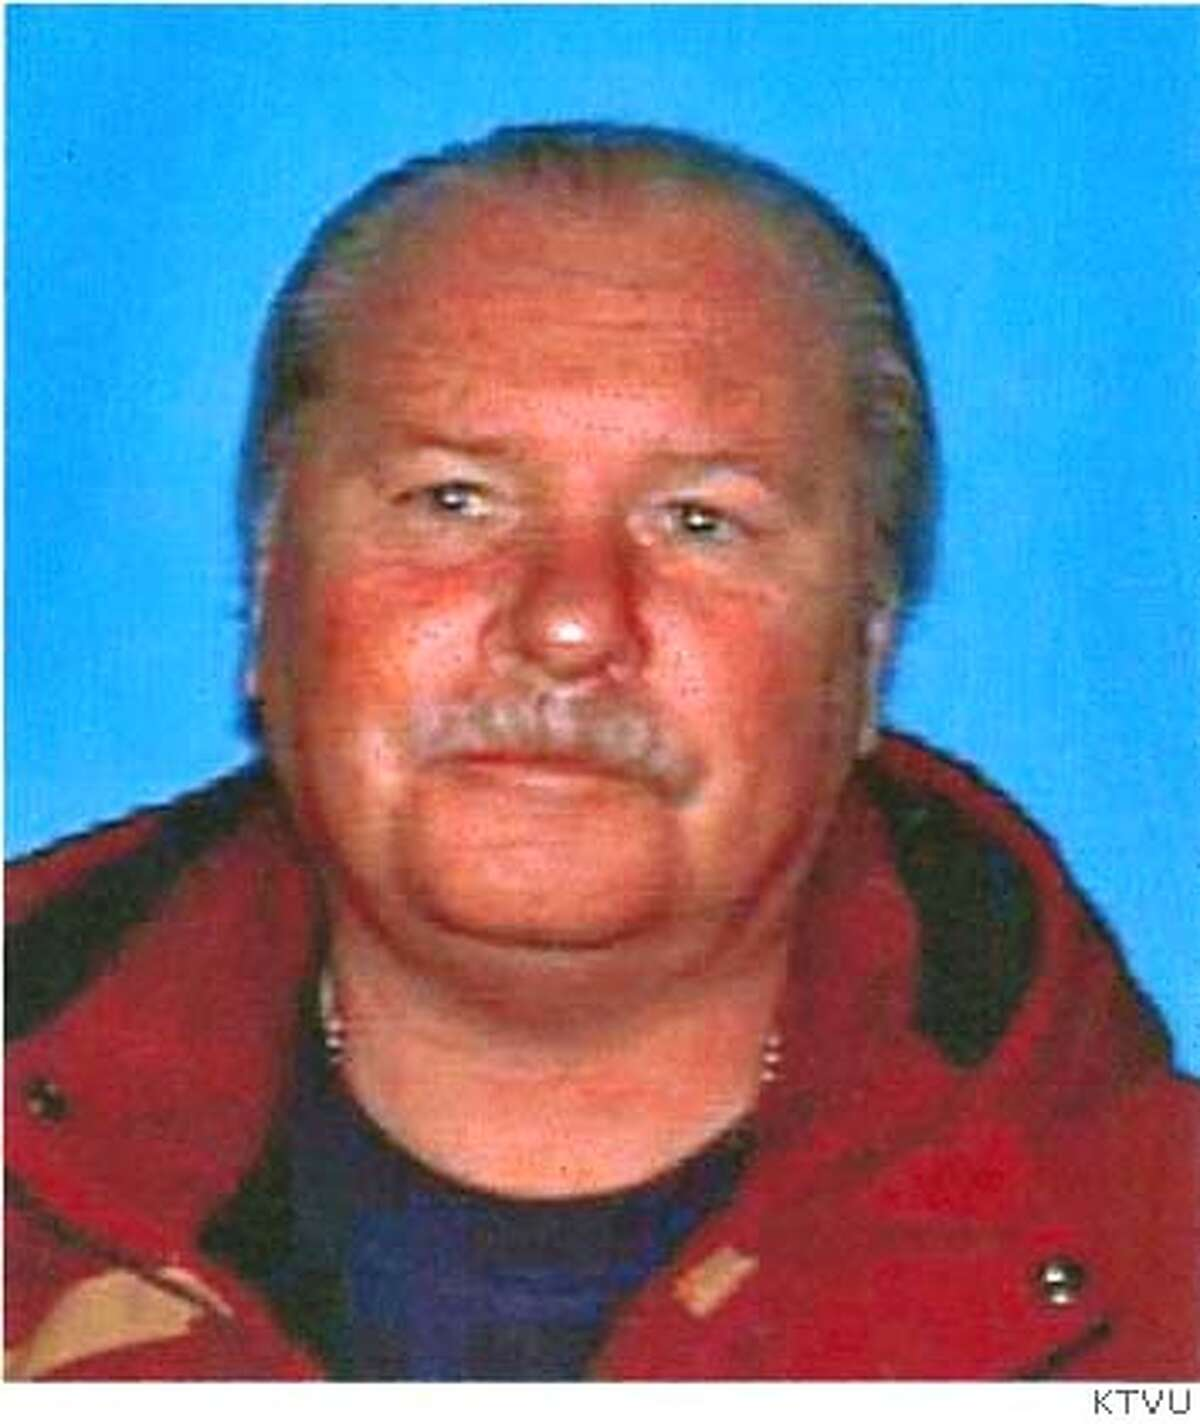 EMERYVILLE08_ph2.jpg Michael Smela, 56, of Oakley, a security guard for the pharmaceutical company Novartis was killed by Emeryville's new mayor. Ken Bukowsk, struck and killed a pedestrian after leaving a community meeting to discuss a proposed pedestrian and bicycle bridge. MANDATORY CREDIT FOR PHOTOG AND SAN FRANCISCO CHRONICLE/NO SALES-MAGS OUT